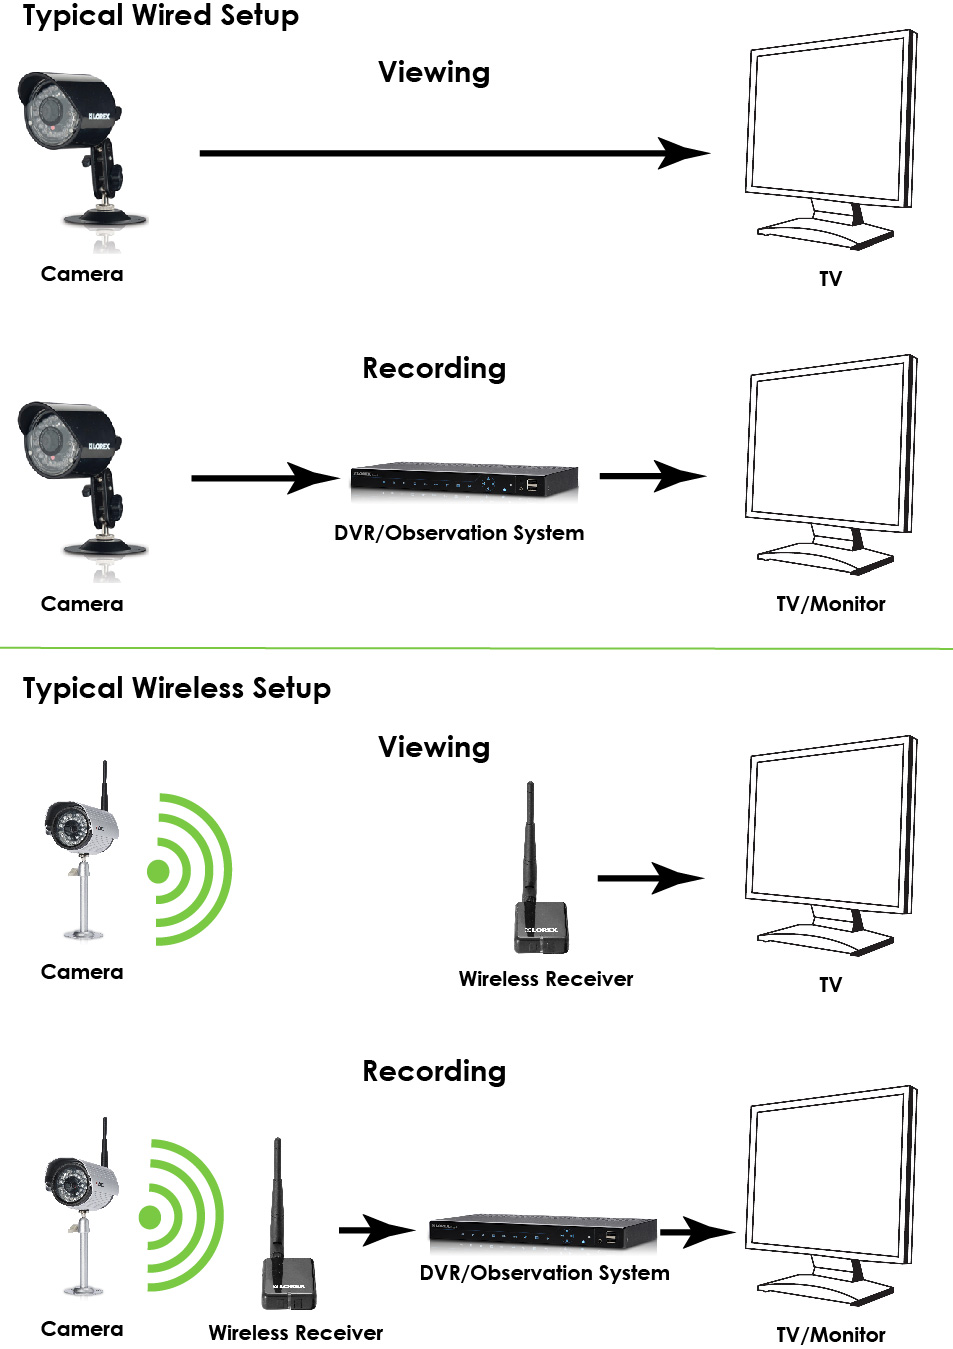 Wired vs wireles setup diagram